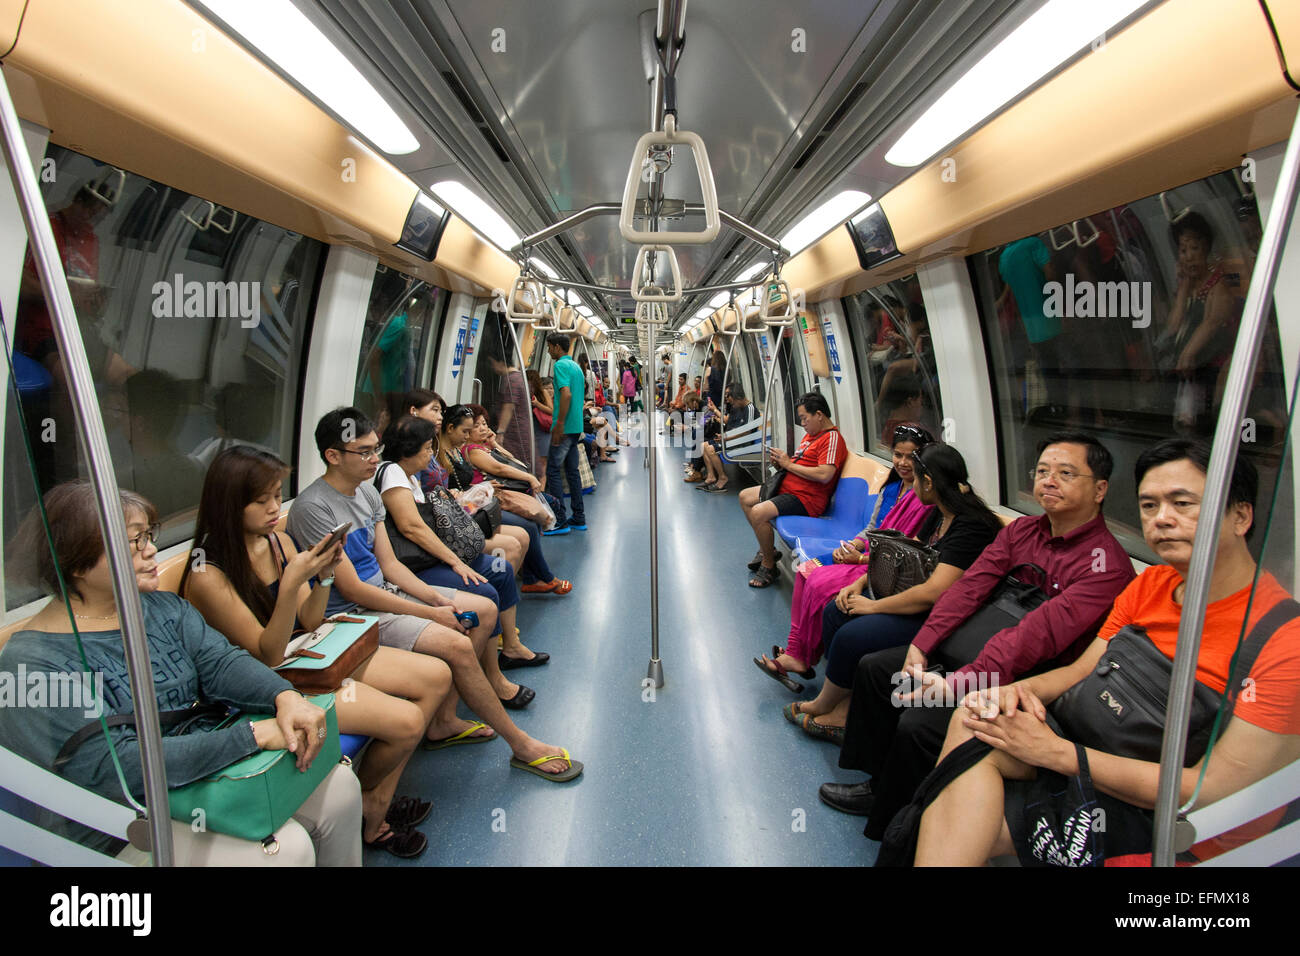 Interior of a carriage of the Singapore MRT (Mass Rapid Transit) system. Stock Photo